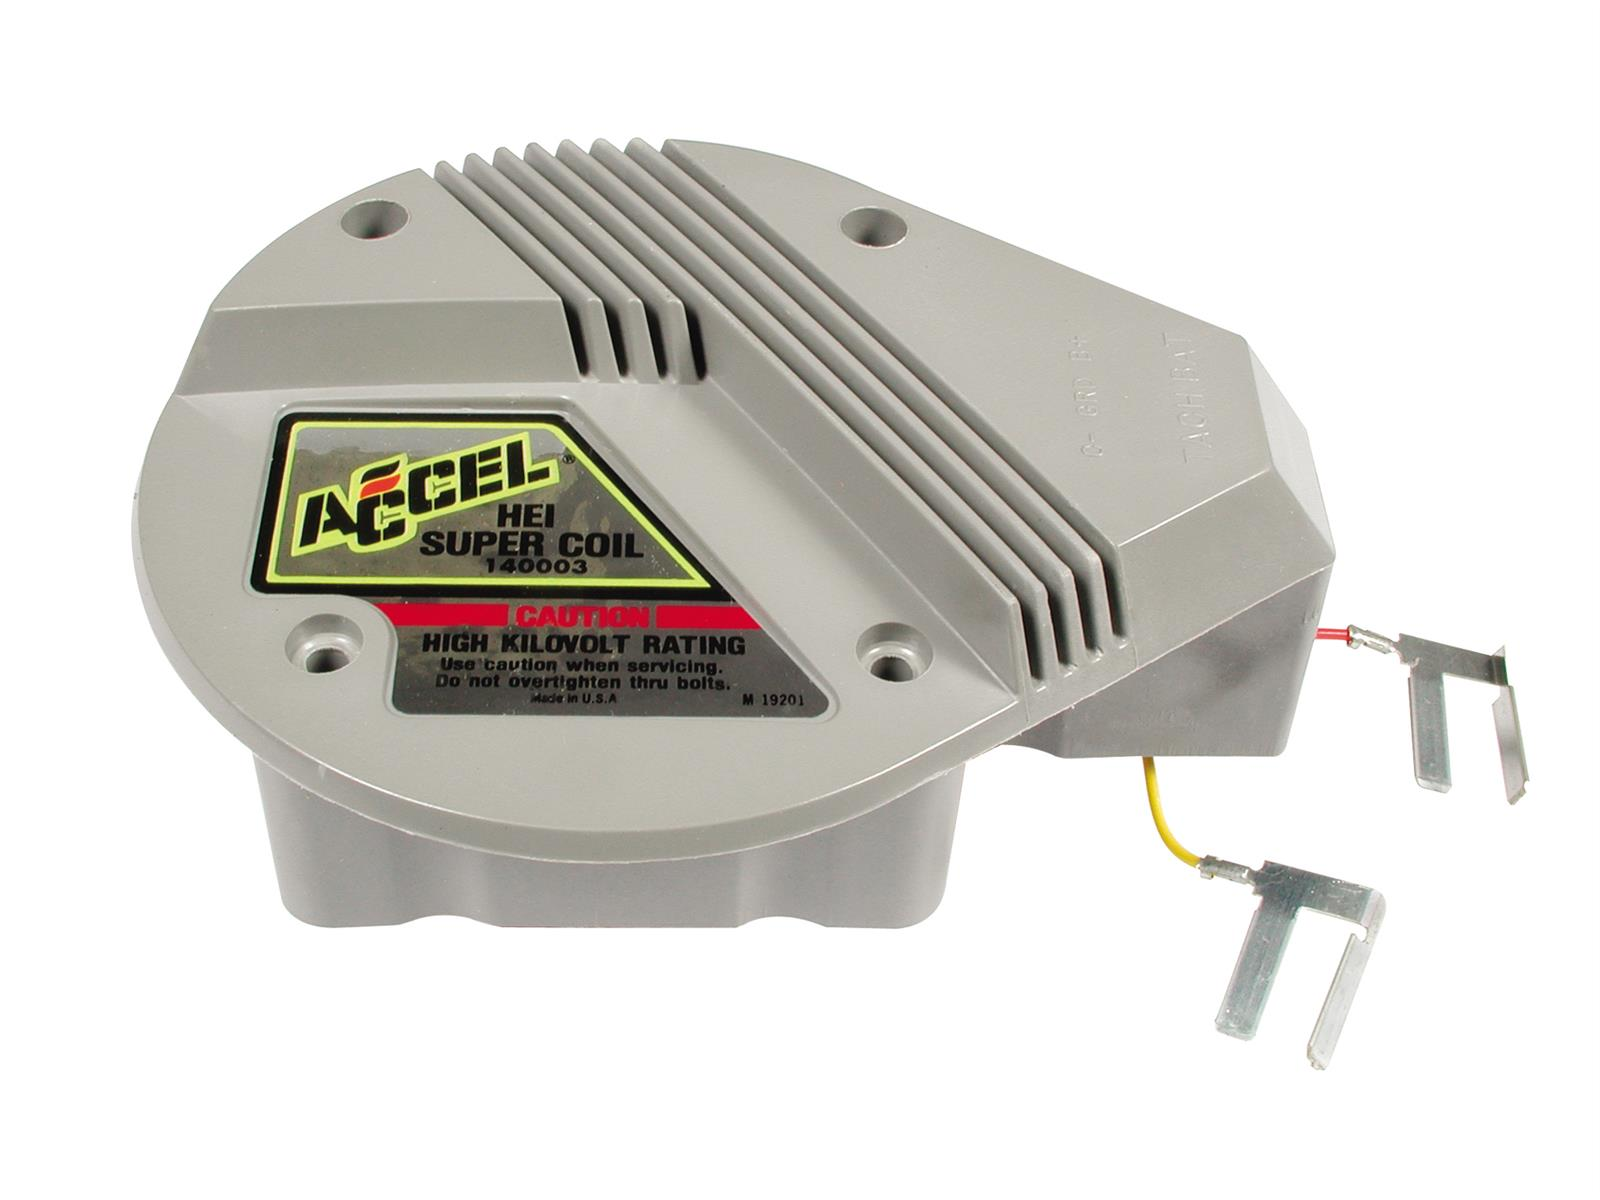 acc 140003_xl accel gm hei in cap super coils 140003 free shipping on orders accel hei super coil wiring diagram at readyjetset.co